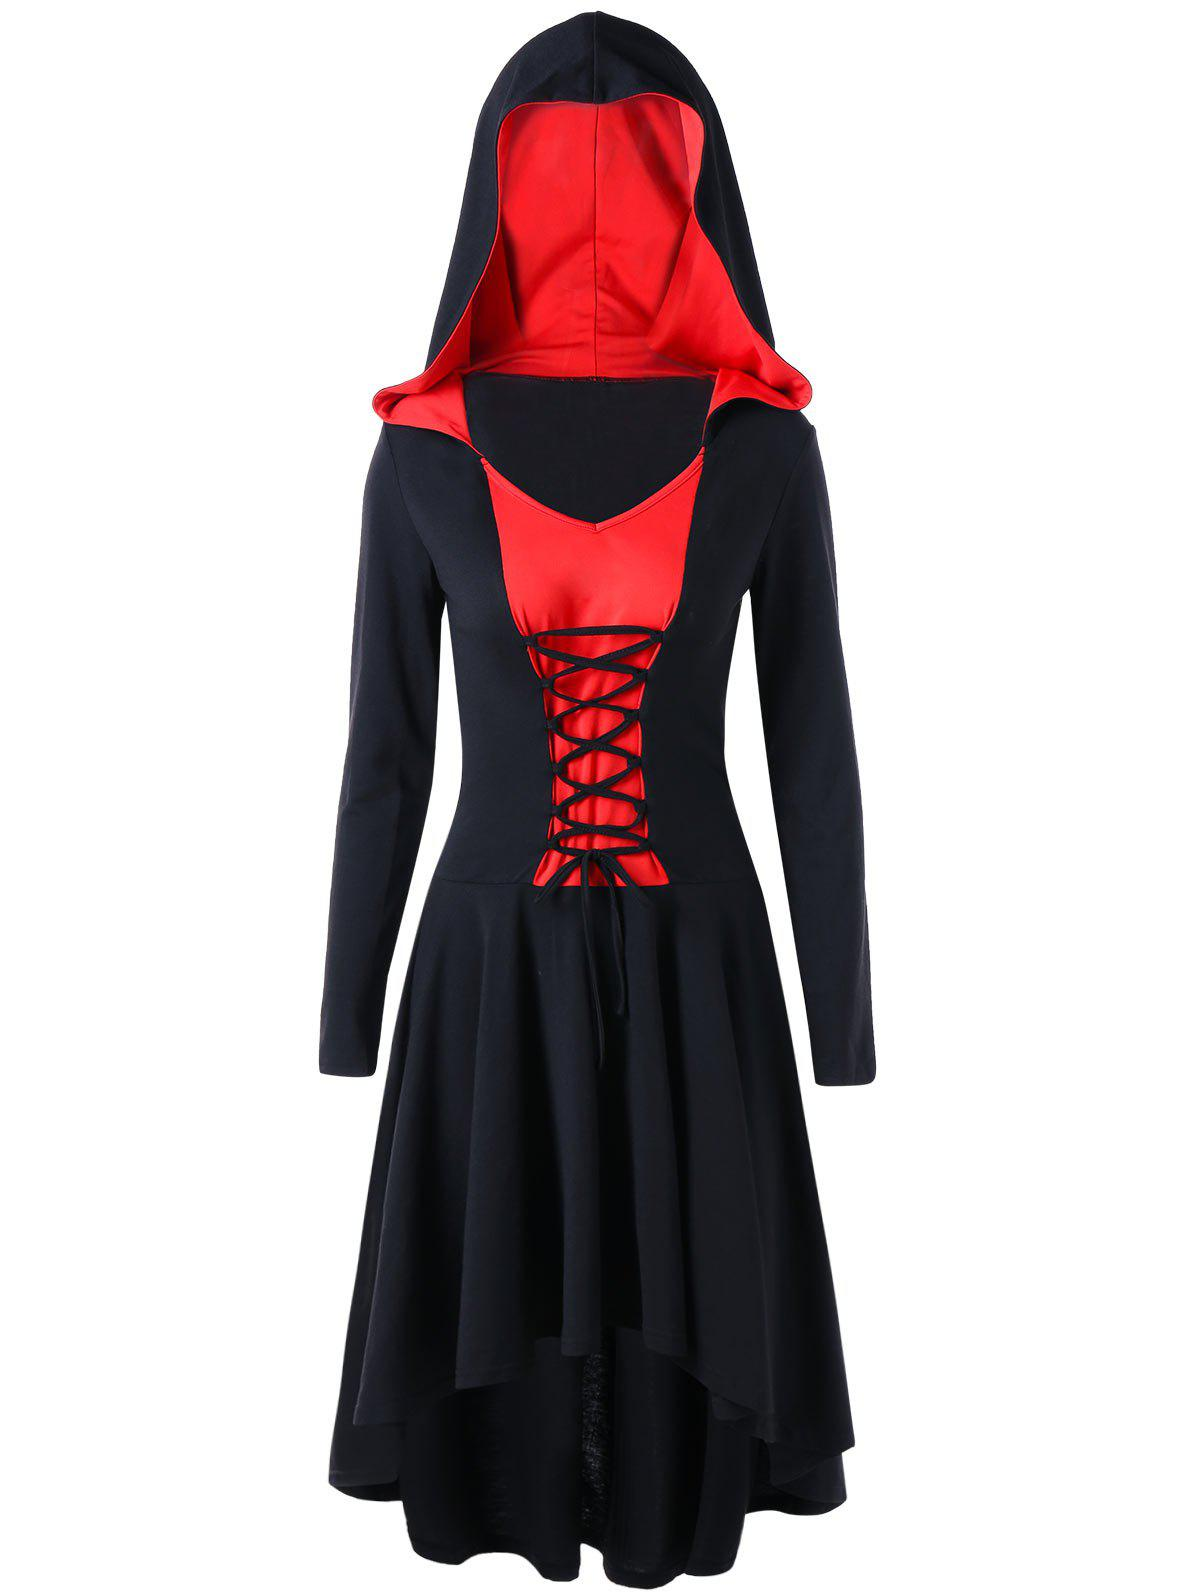 Lace Up Two Tone Hooded DressWOMEN<br><br>Size: 2XL; Color: RED; Style: Gothic; Material: Polyester,Spandex; Silhouette: A-Line; Dresses Length: Mid-Calf; Neckline: Hooded; Sleeve Length: Long Sleeves; Pattern Type: Solid; With Belt: No; Season: Fall,Spring; Weight: 0.5400kg; Package Contents: 1 x Dress;